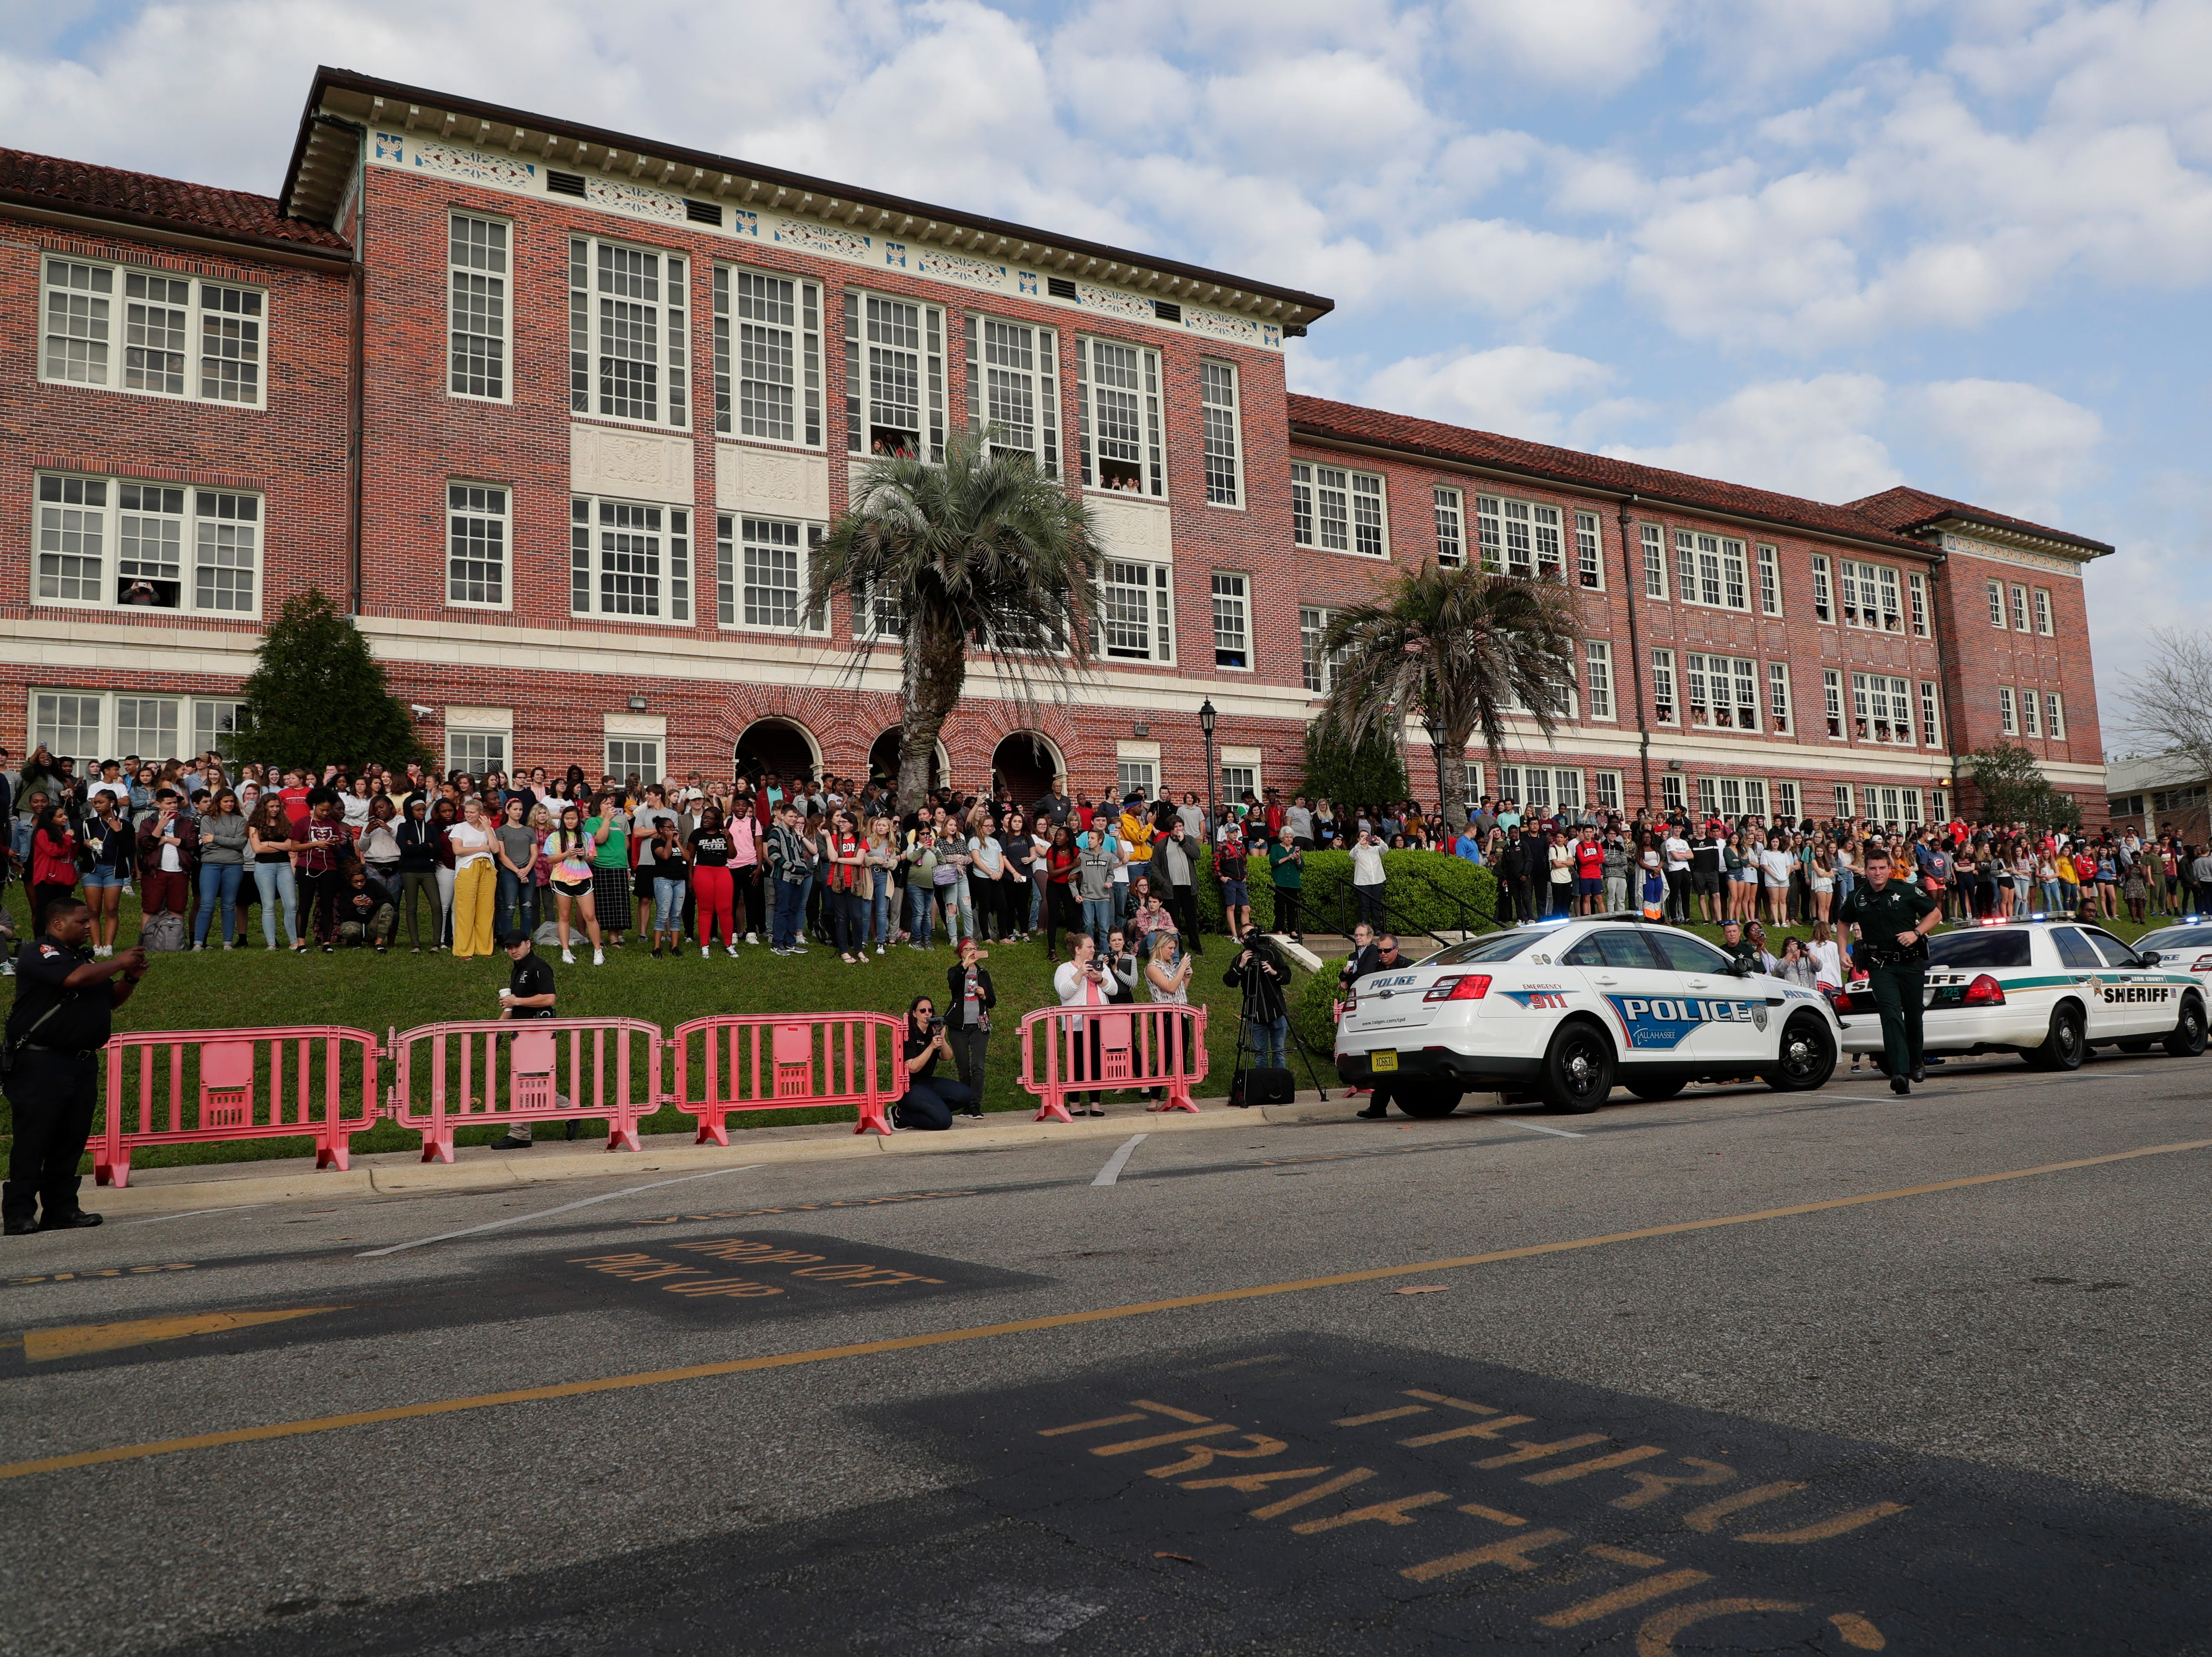 Leon High School students gather on the front lawn to watch as Leon High School partners with the county safety officials to give a simulation on the consequences of drunk driving before the students leave for spring break Friday, March 15, 2019.